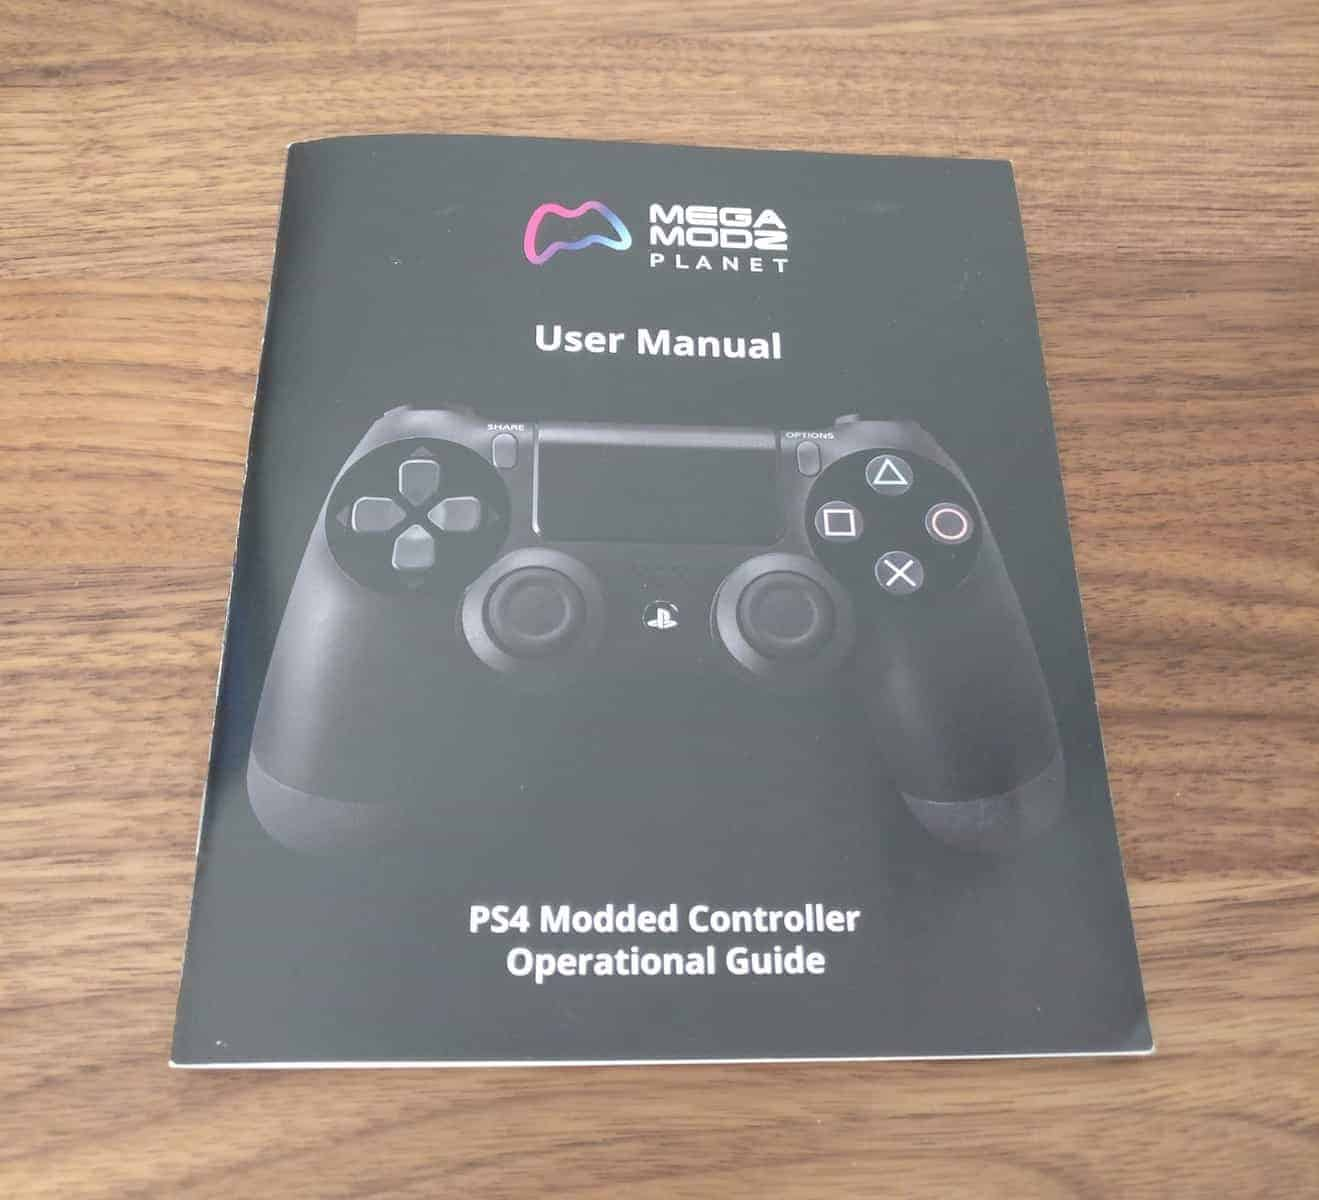 mega-modz-planey-ps4-Photos-03 Mega Modz Planet Modded PS4 and Xbox One Controller Review